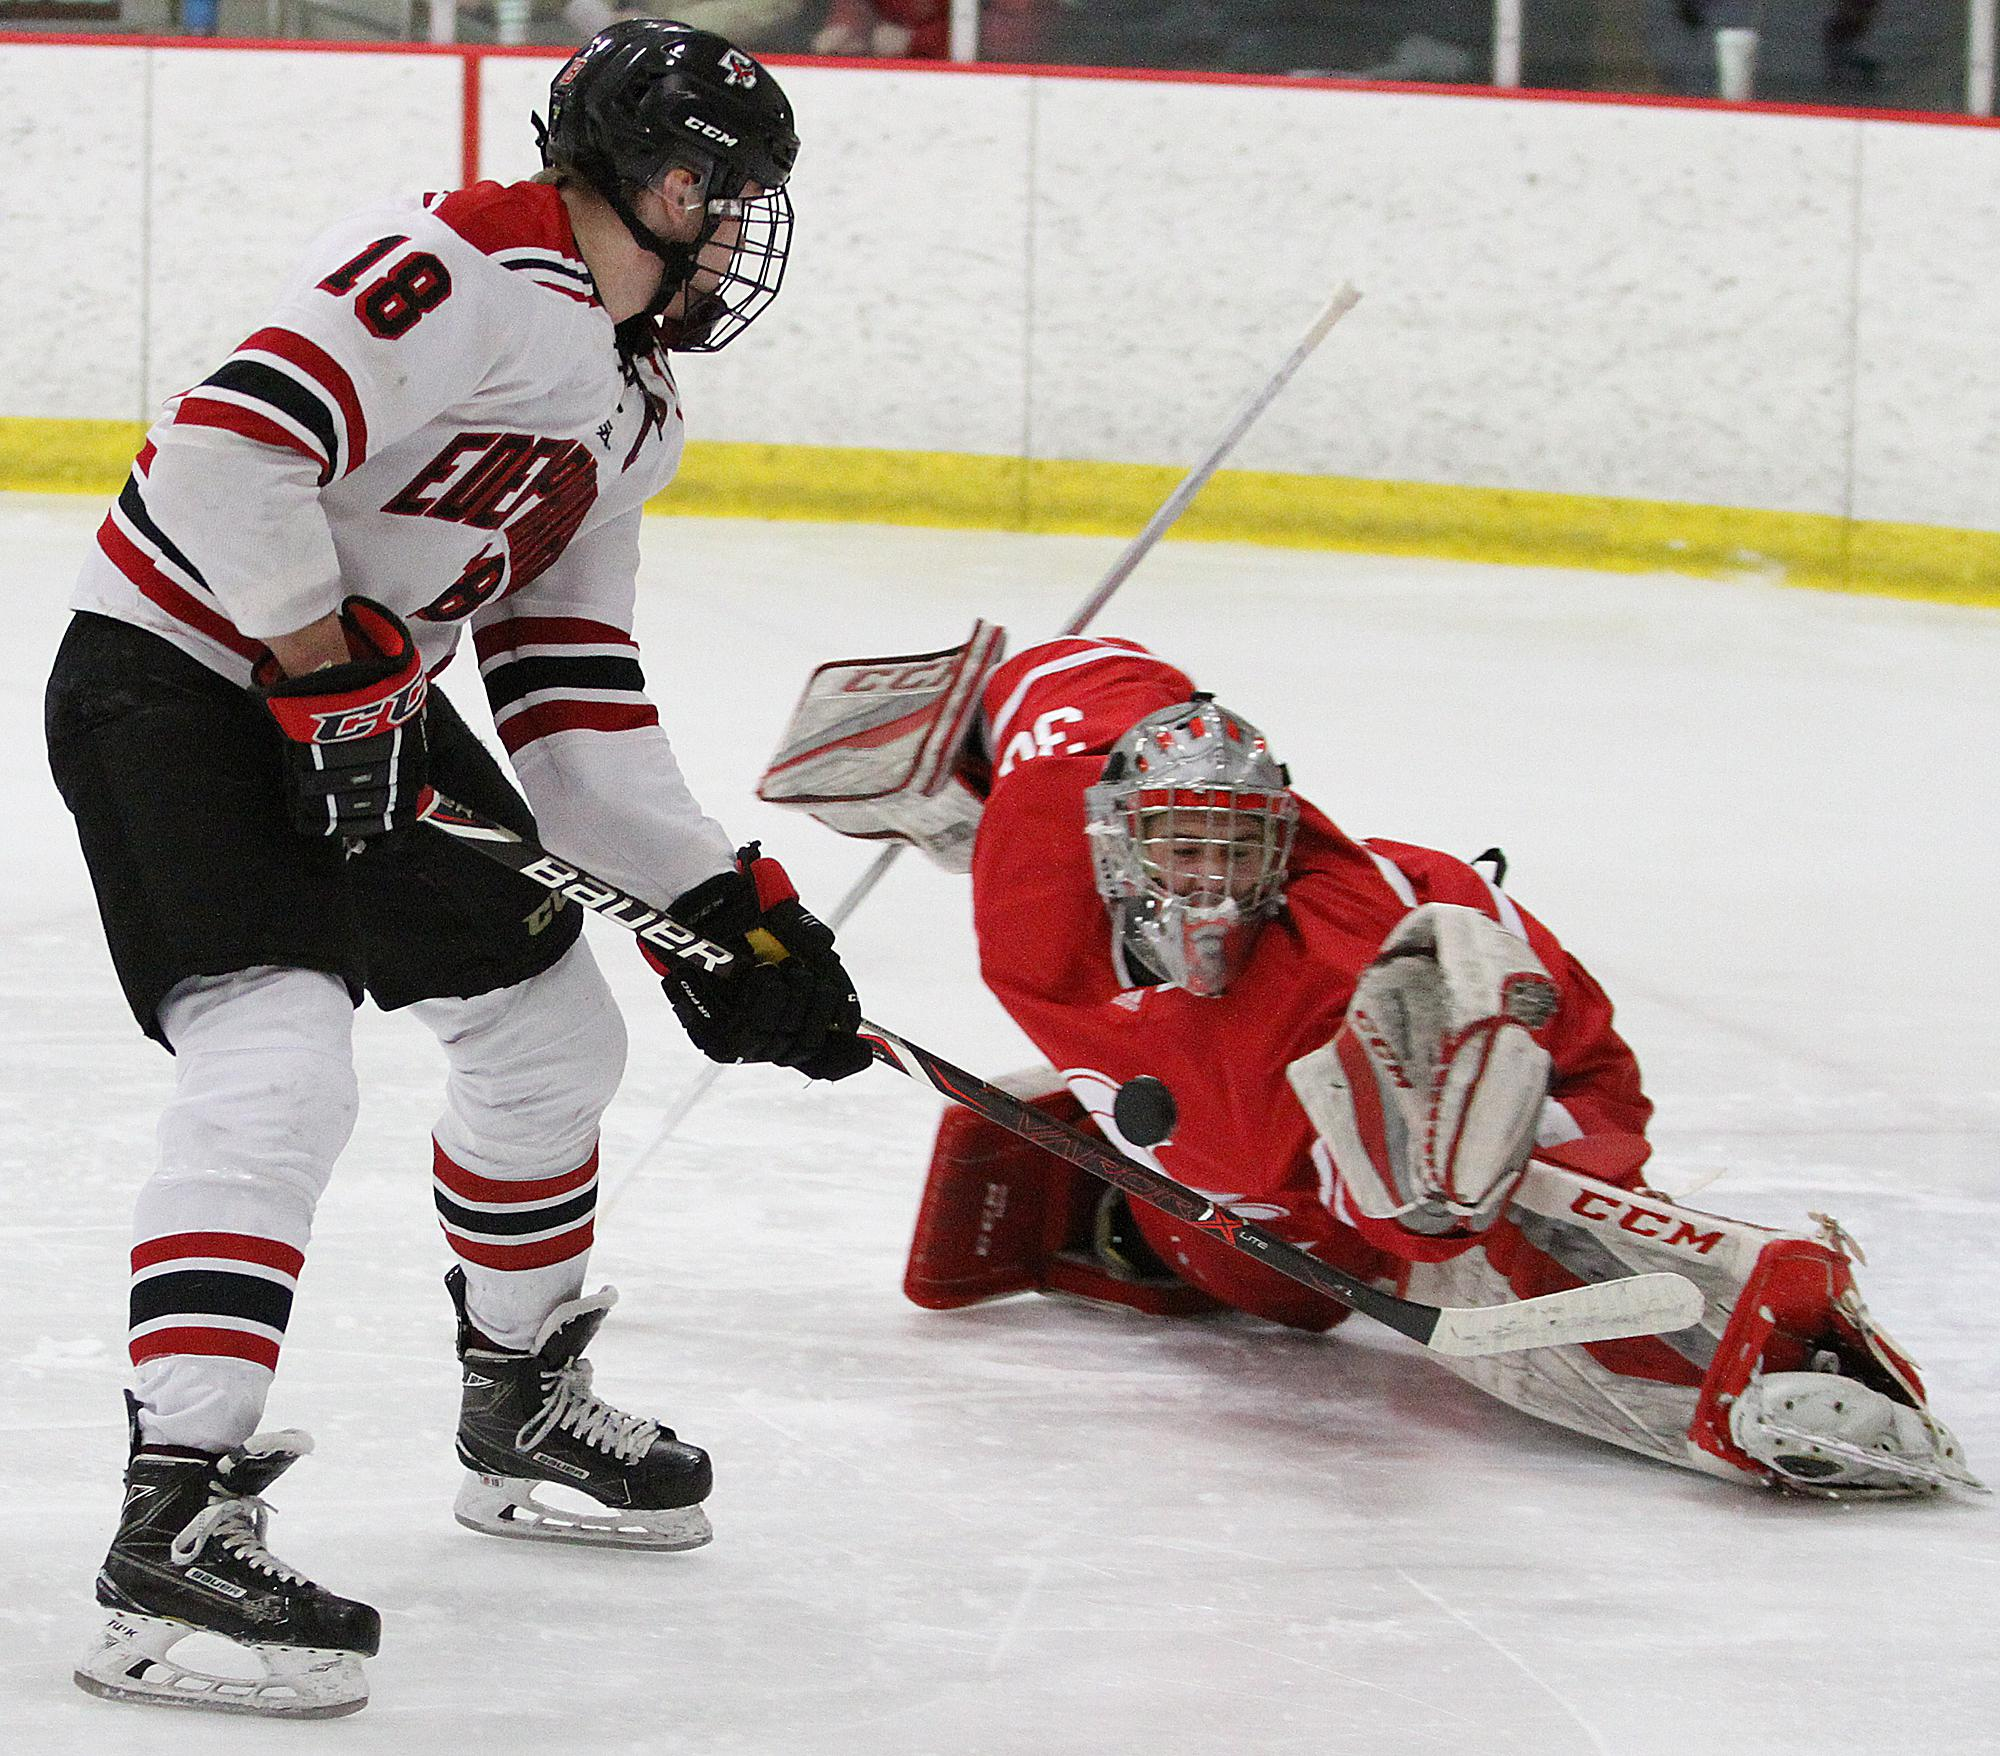 Benilde-St. Margaret's goalie Carson Limesand stops a scoring chance by Eden Prairie forward Jack Jensen during the first period Saturday evening at Eden Prairie Community Center.  Photo b